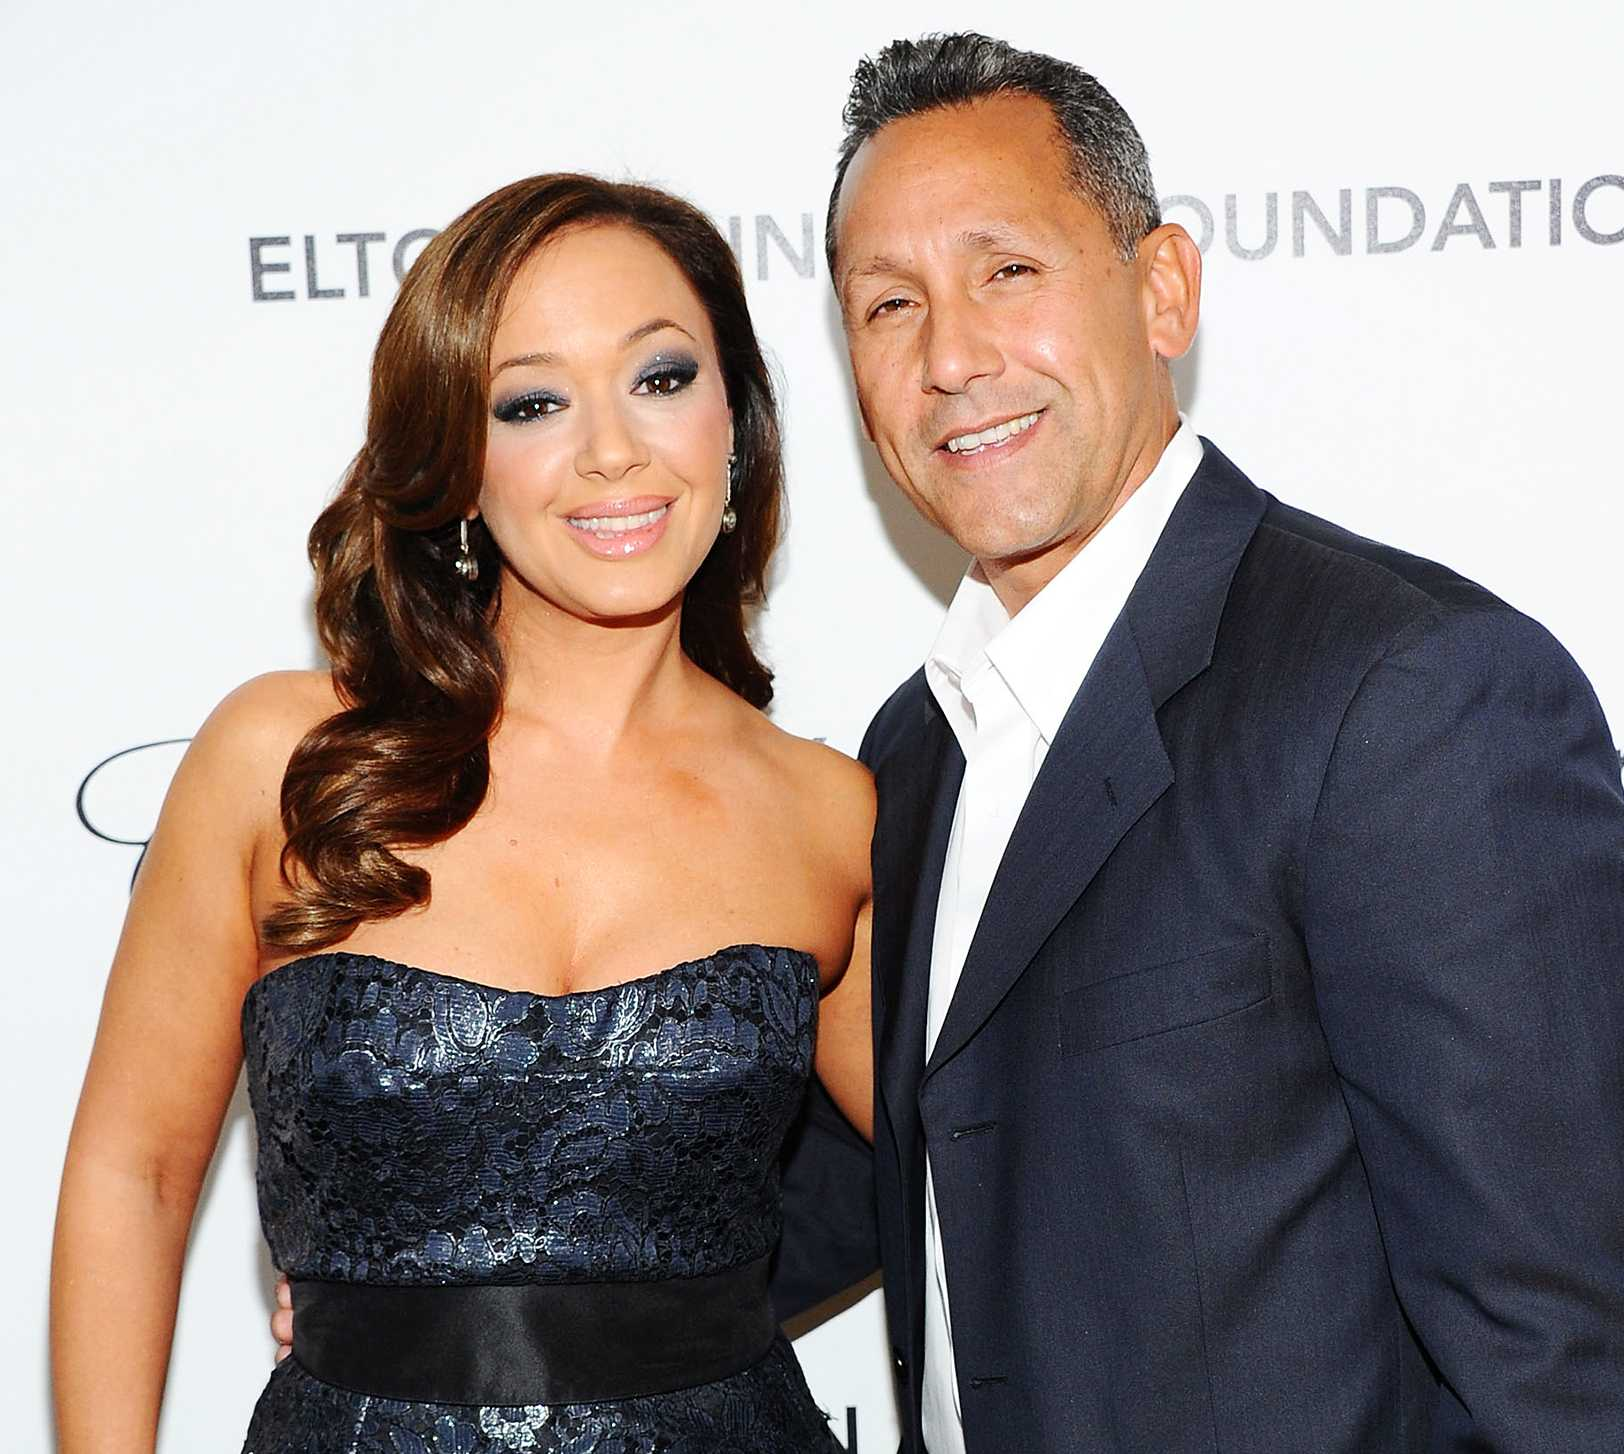 Leah Remini husband